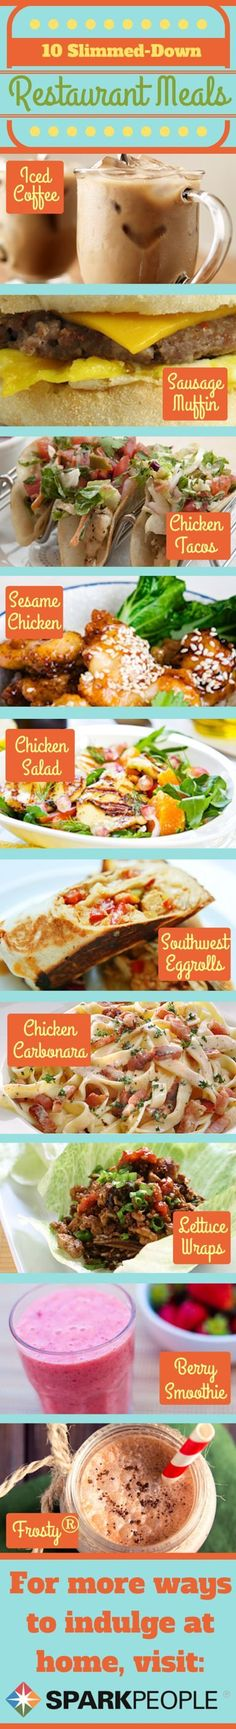 10 Restaurant Meals Get a Healthy Makeover. Skip the unhealthy, calorie-laden restaurant go-to meals and make these delicious versions at home! | via @SparkPeople